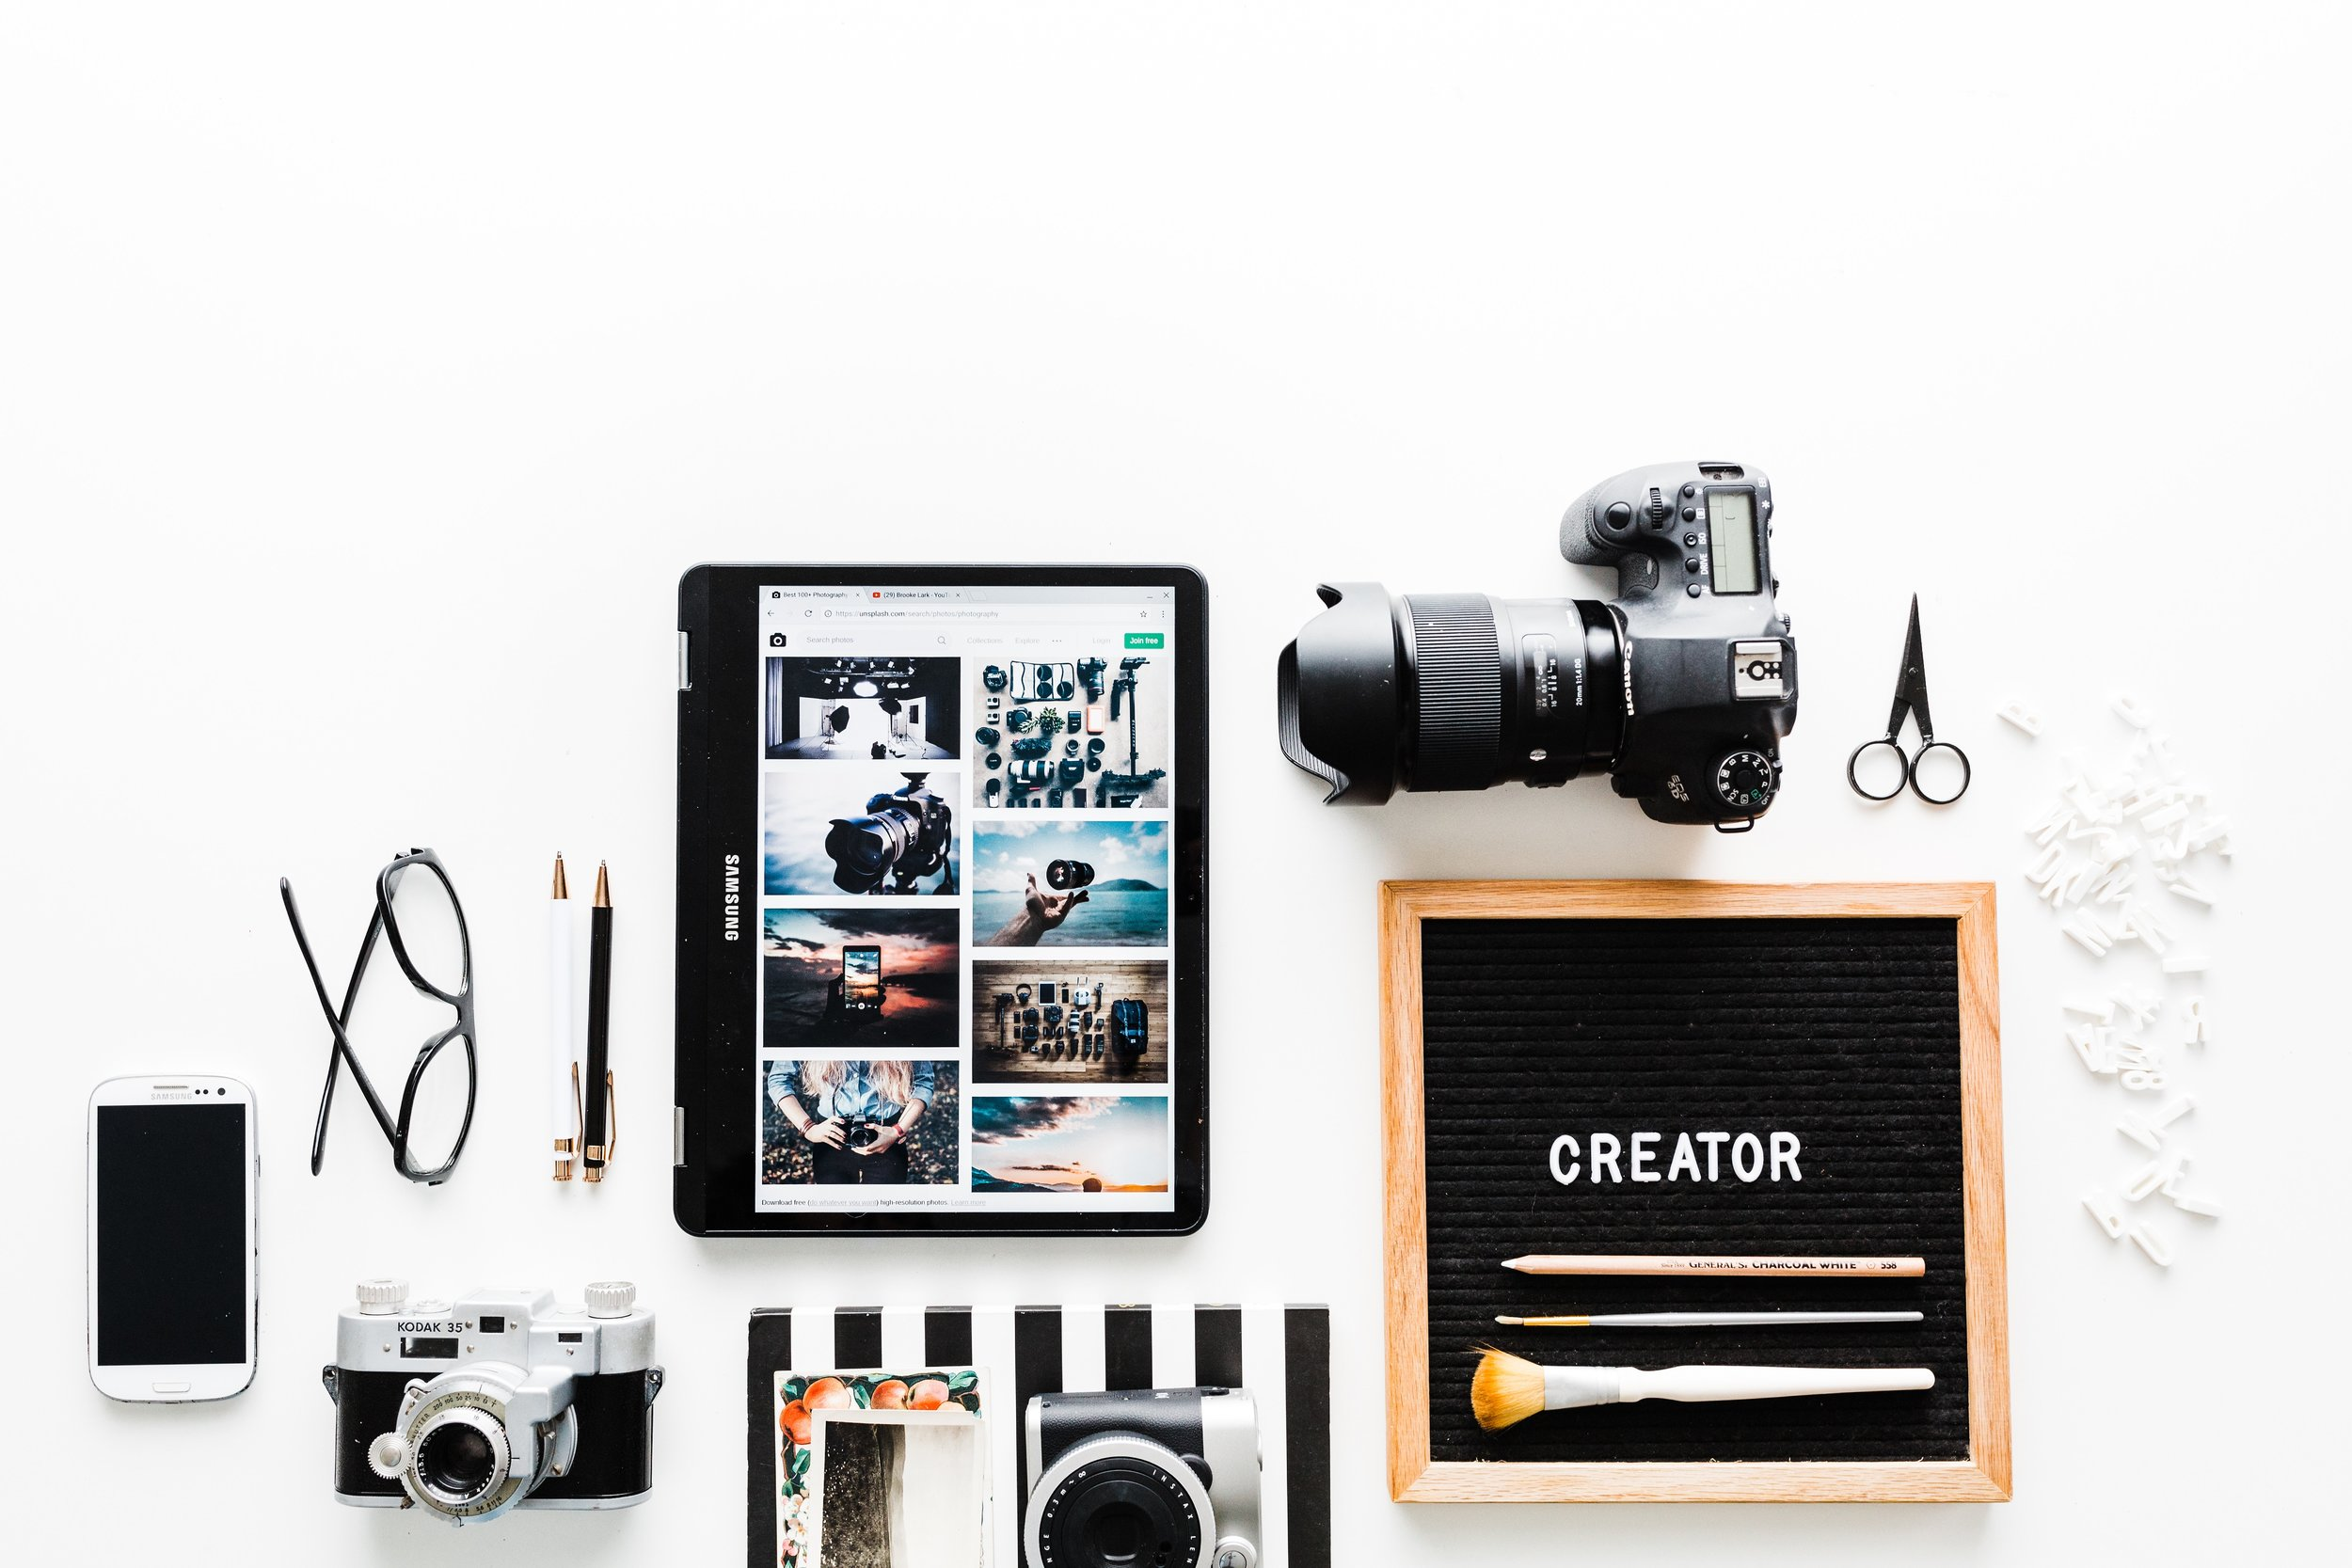 To get through the noise on social media, - you will need to work on copywriting  and photography skills. Aside from  captivating images, the text is king. Our secret formula is 4 C's.  Before clicking